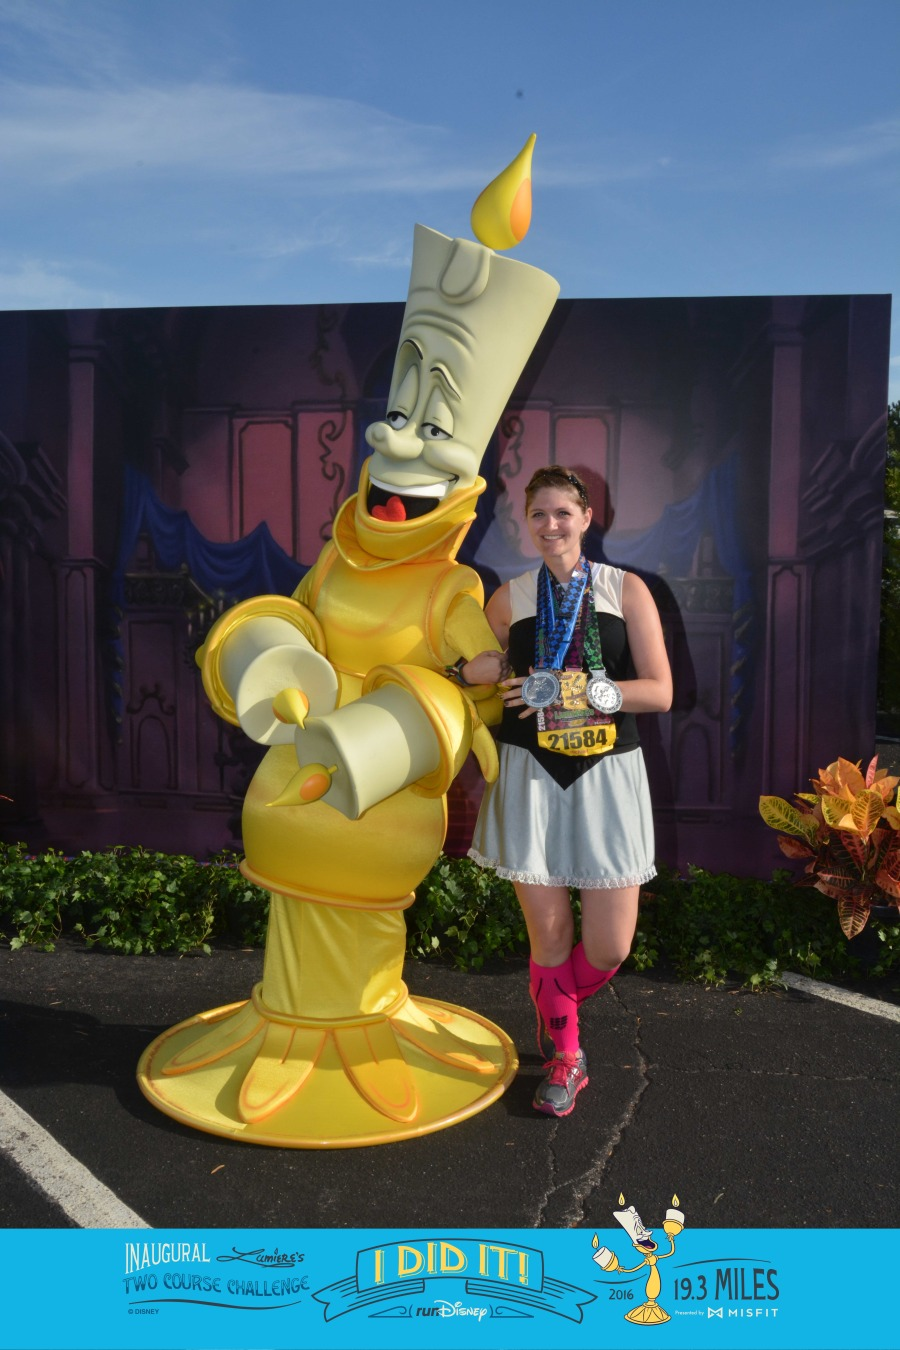 photopass_visiting_wdwrundisney_393128898965